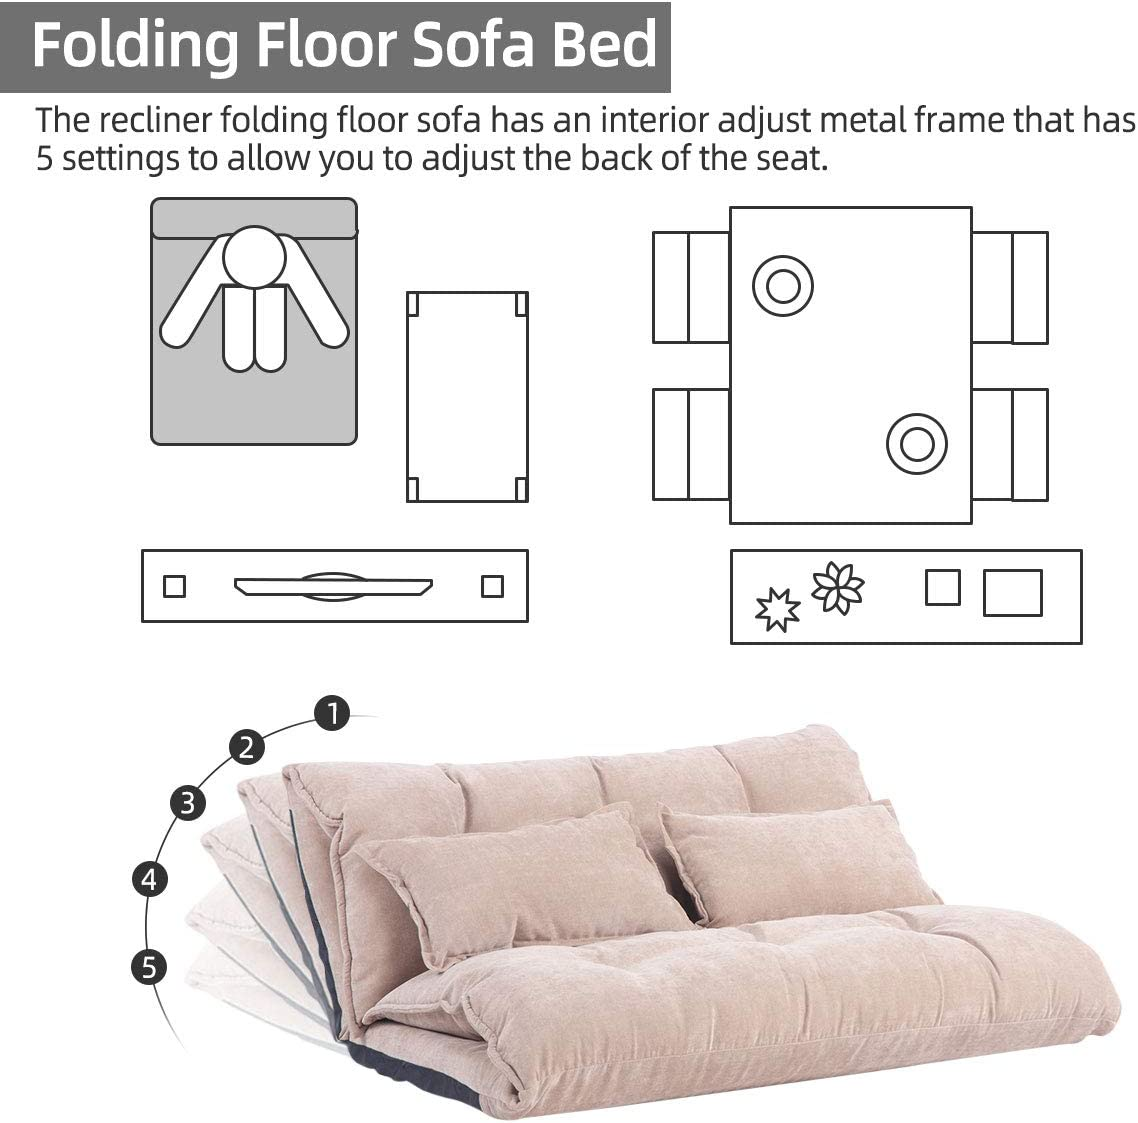 5 Positions Adjustable Floor Sofa and Couch with 2 Pillows for Living Room//Bedroom//Balcony Floor Sofa Bed for Adults Folding Floor Couch Bed Beige